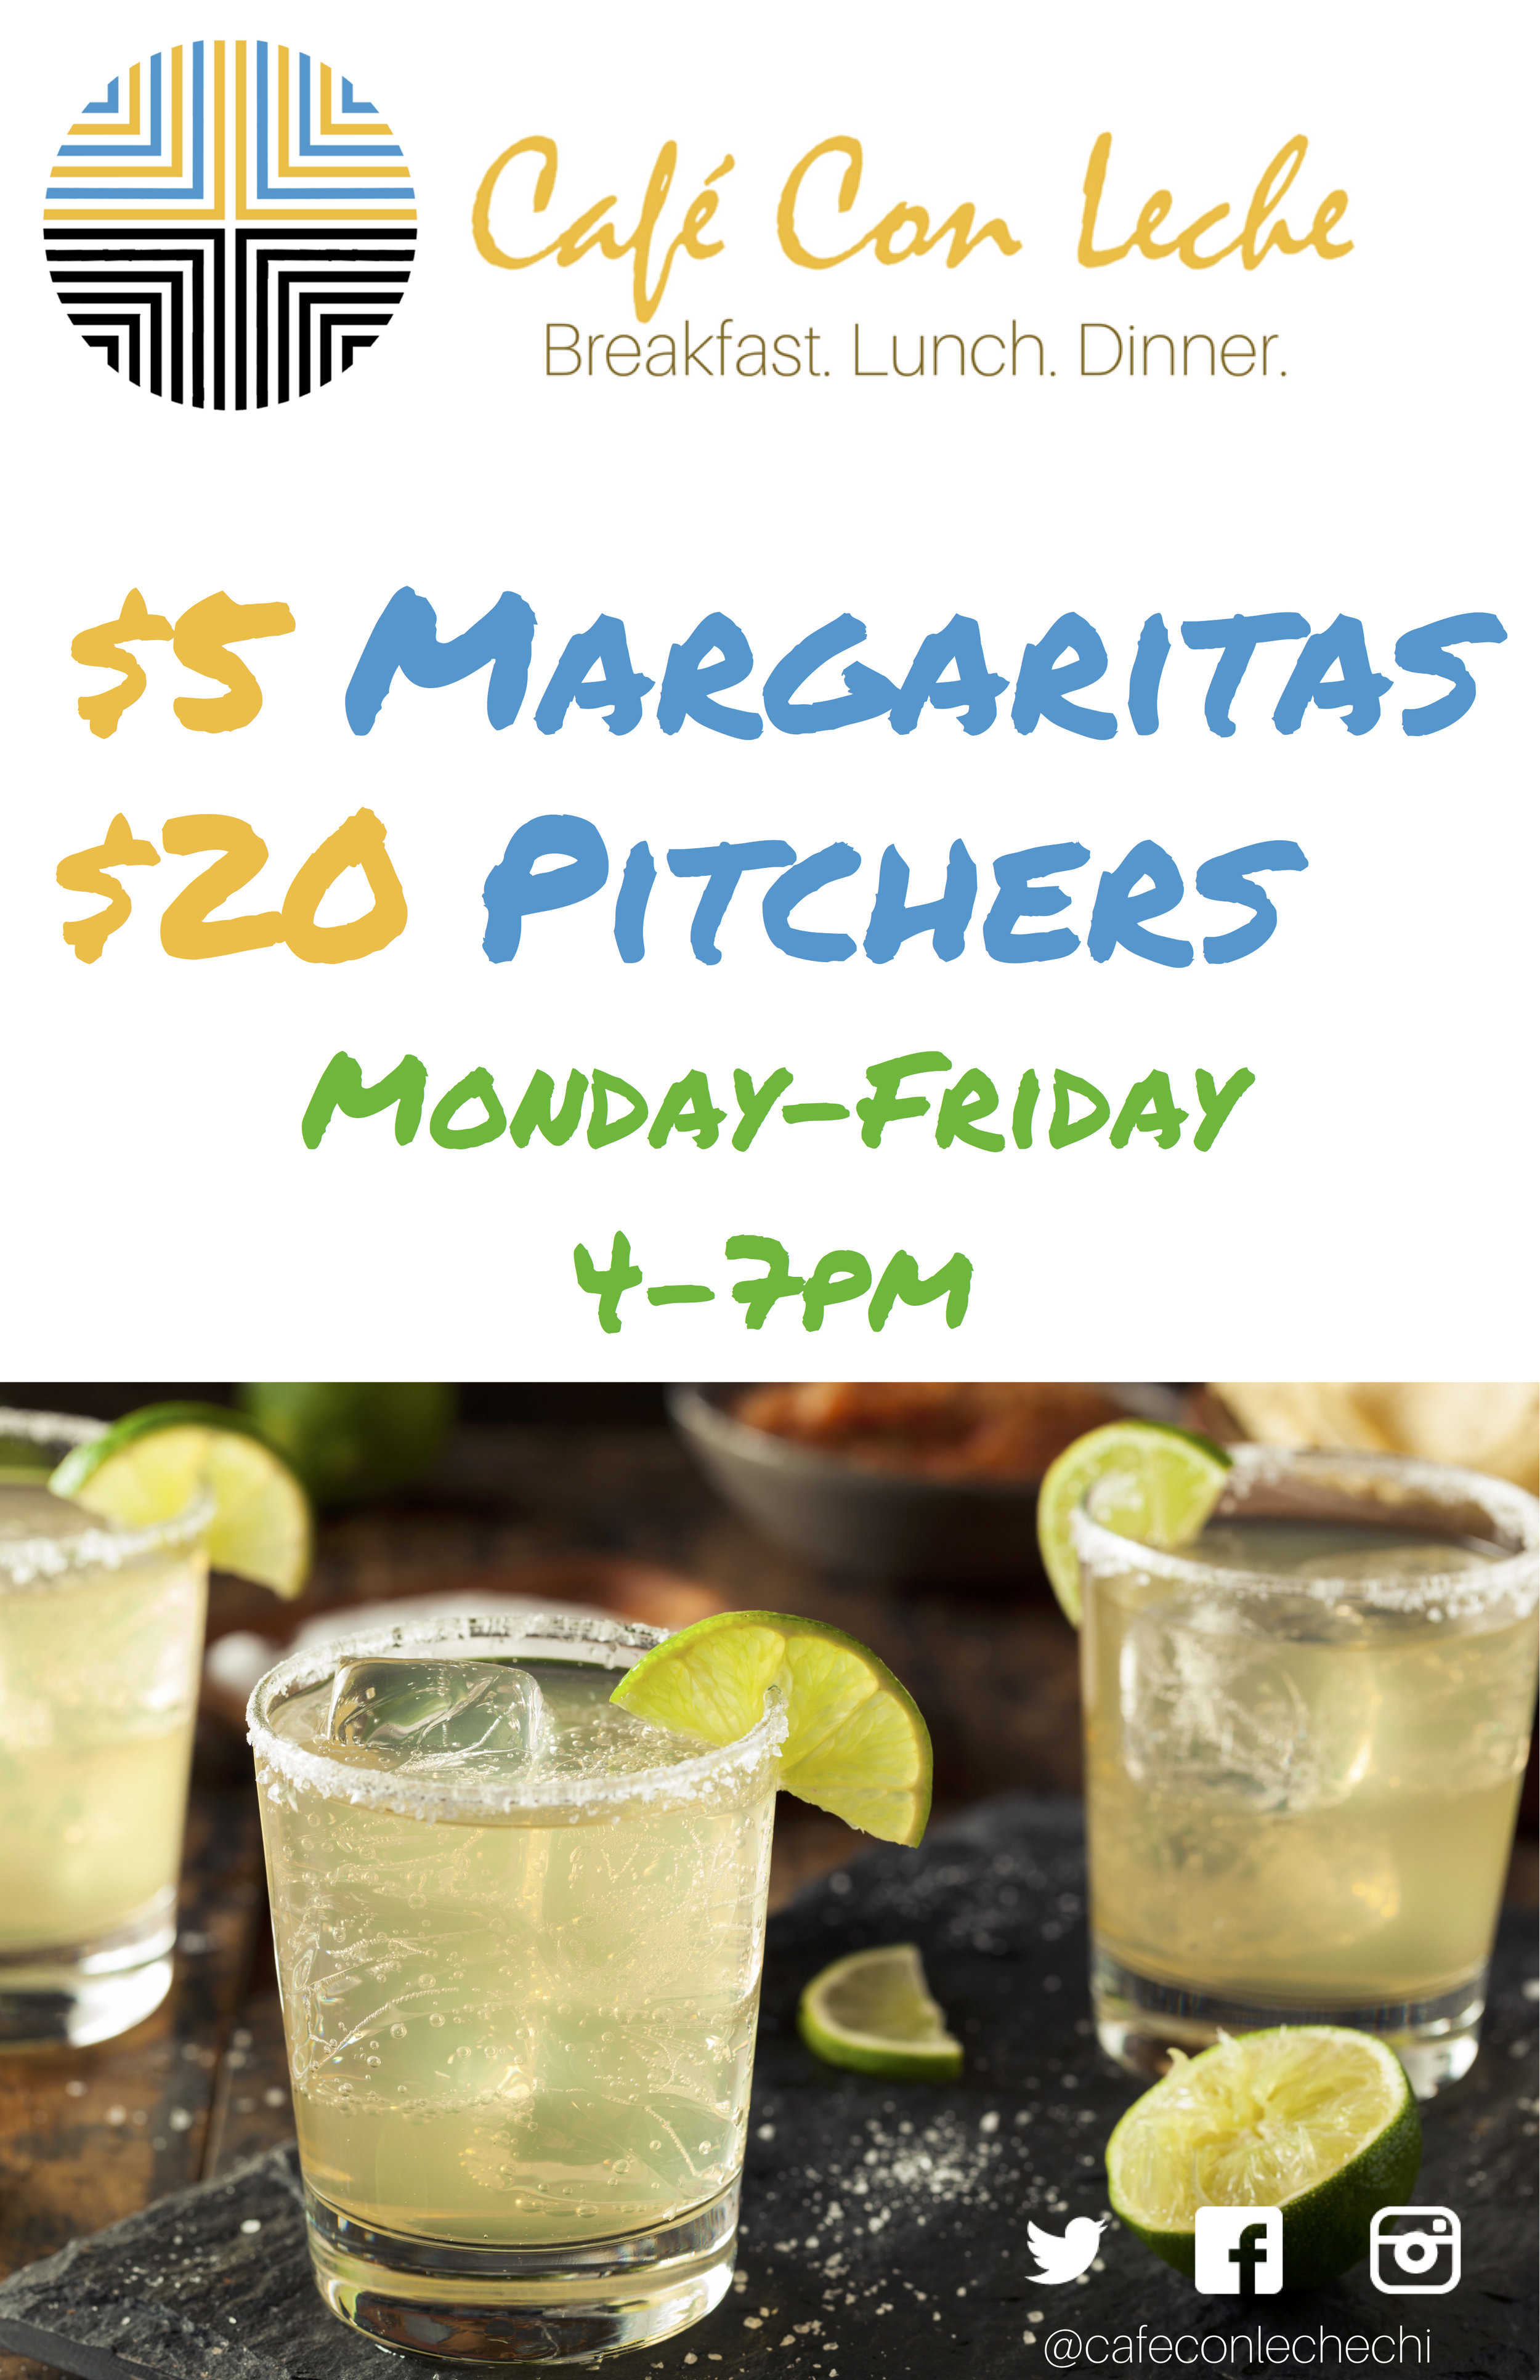 Logan sQuare happy hour specials for 2017 and 2018 at Cafe con Leche.